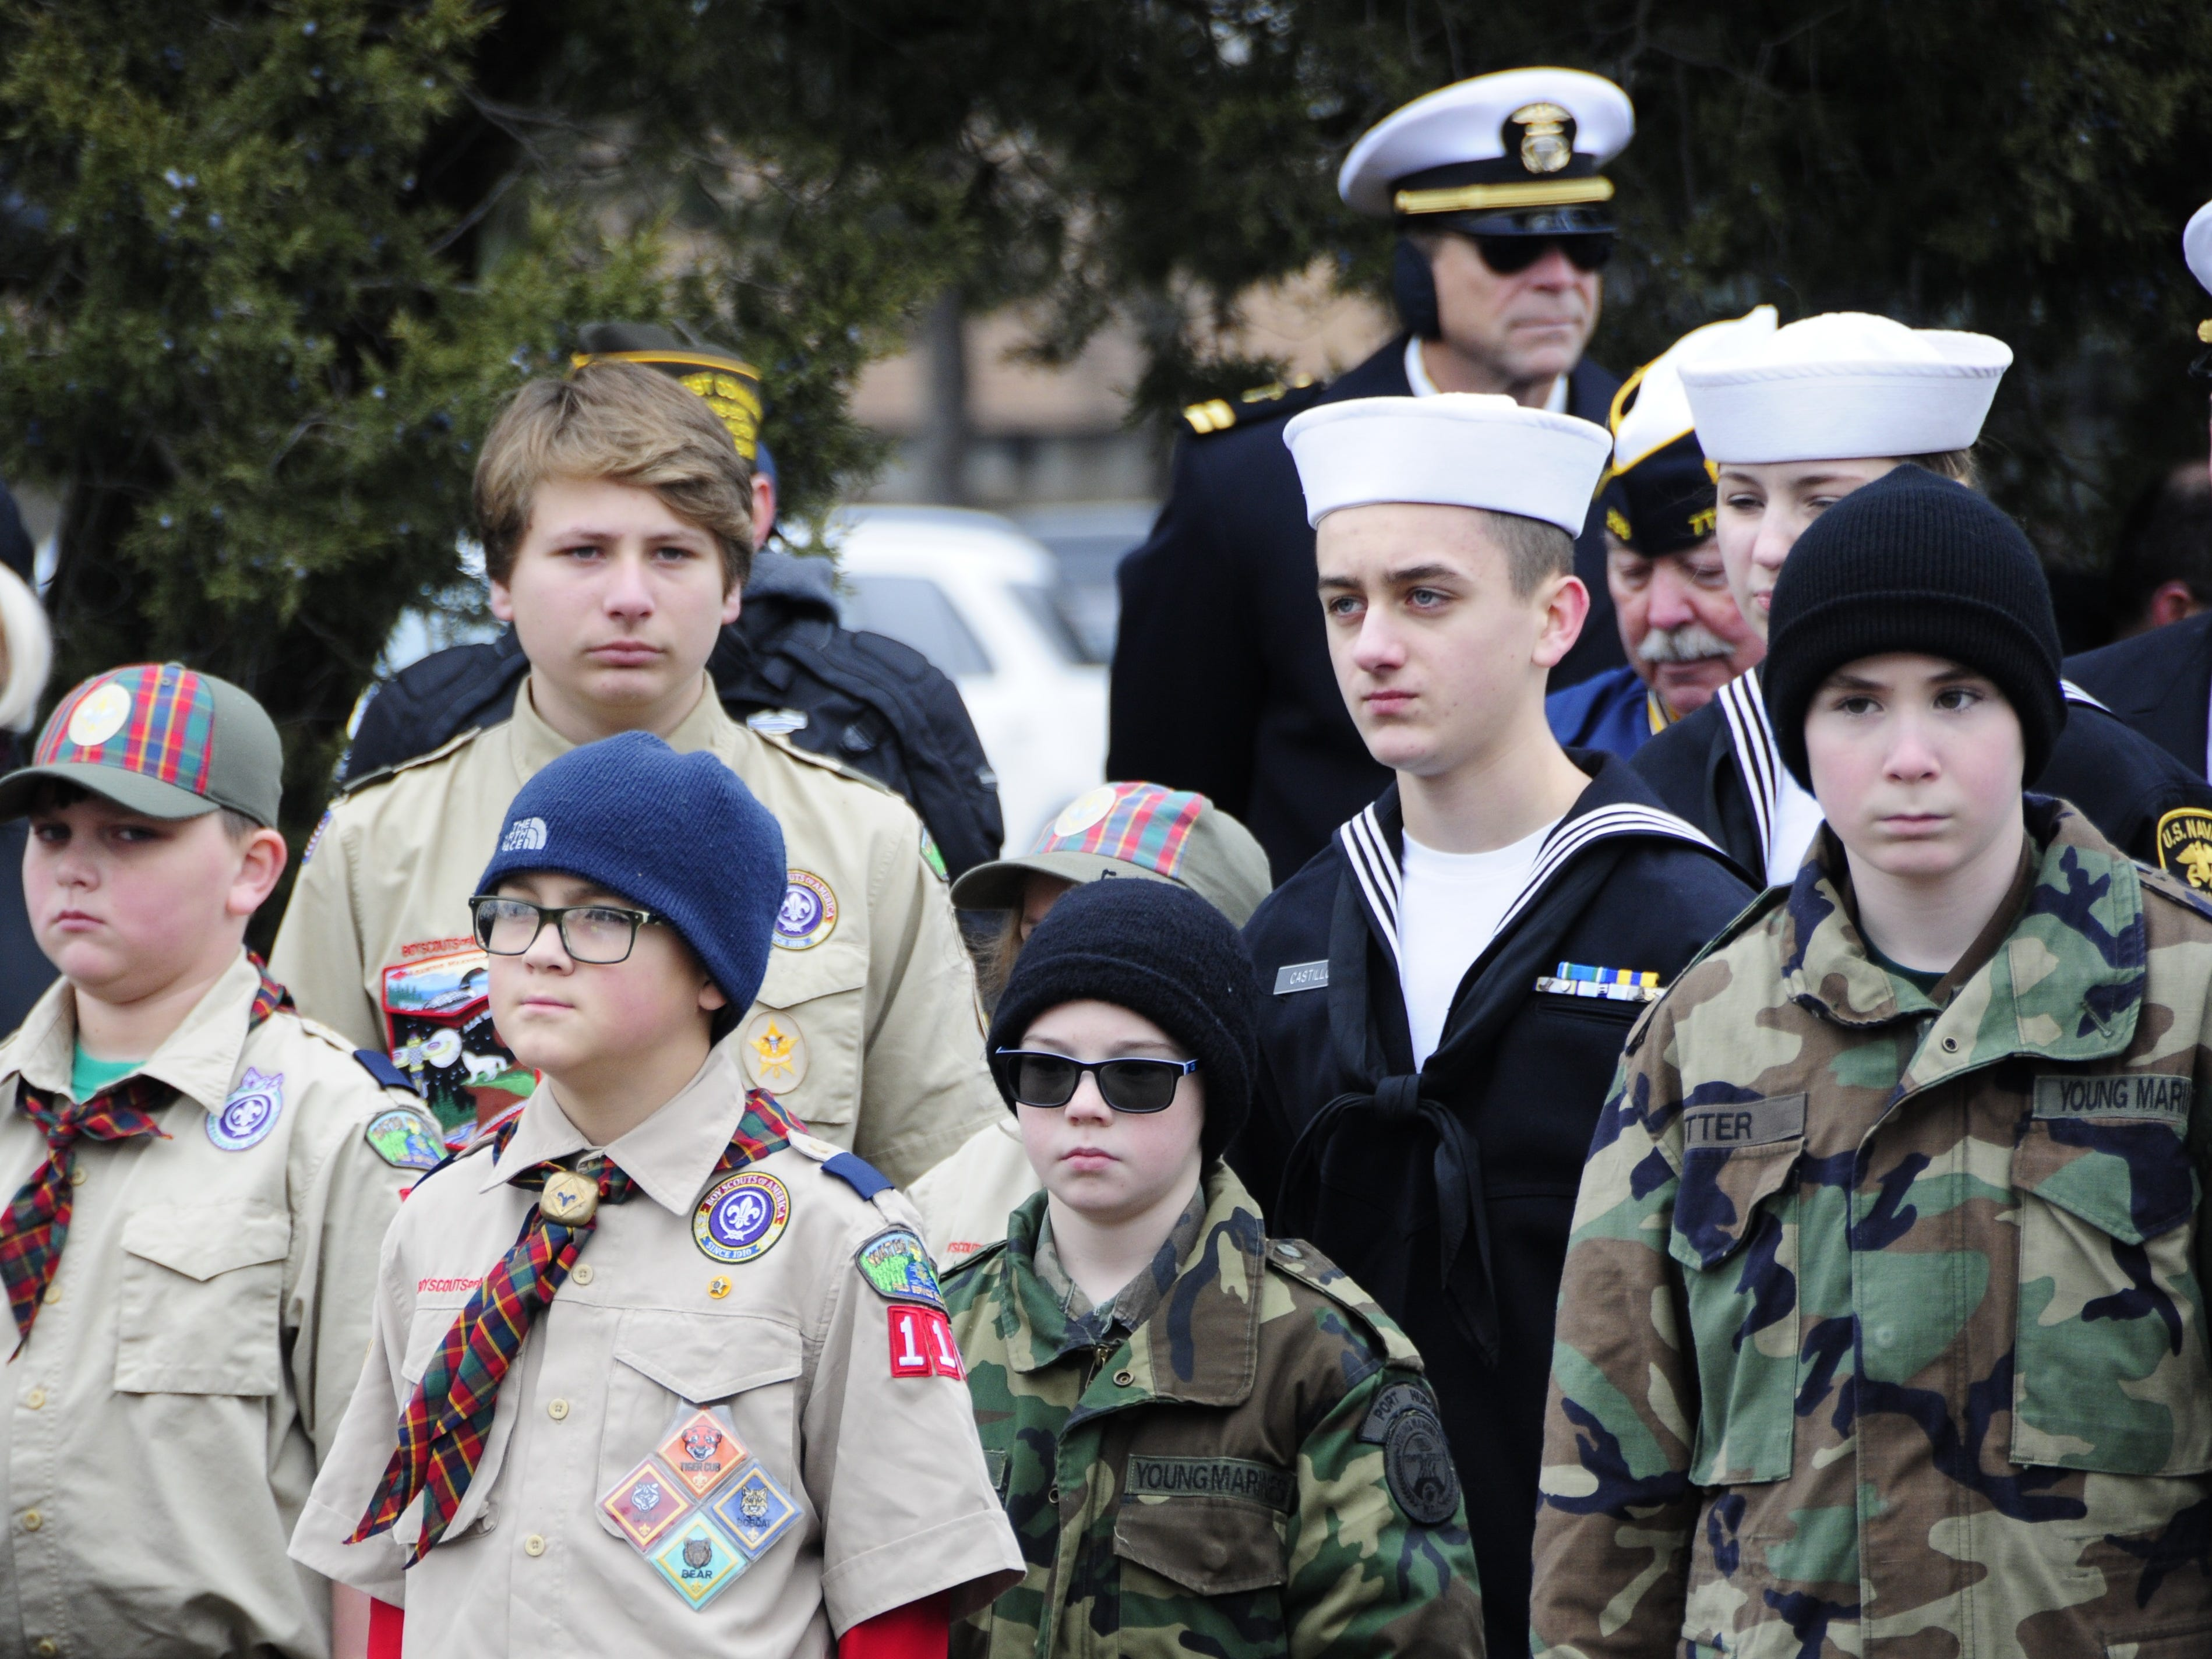 Scouts, Naval Sea Cadets and Young Marines participate in Wreaths Across America on Saturday, Dec. 15, 2018 at St. Clair County Allied Veterans Cemetery in Port Huron.